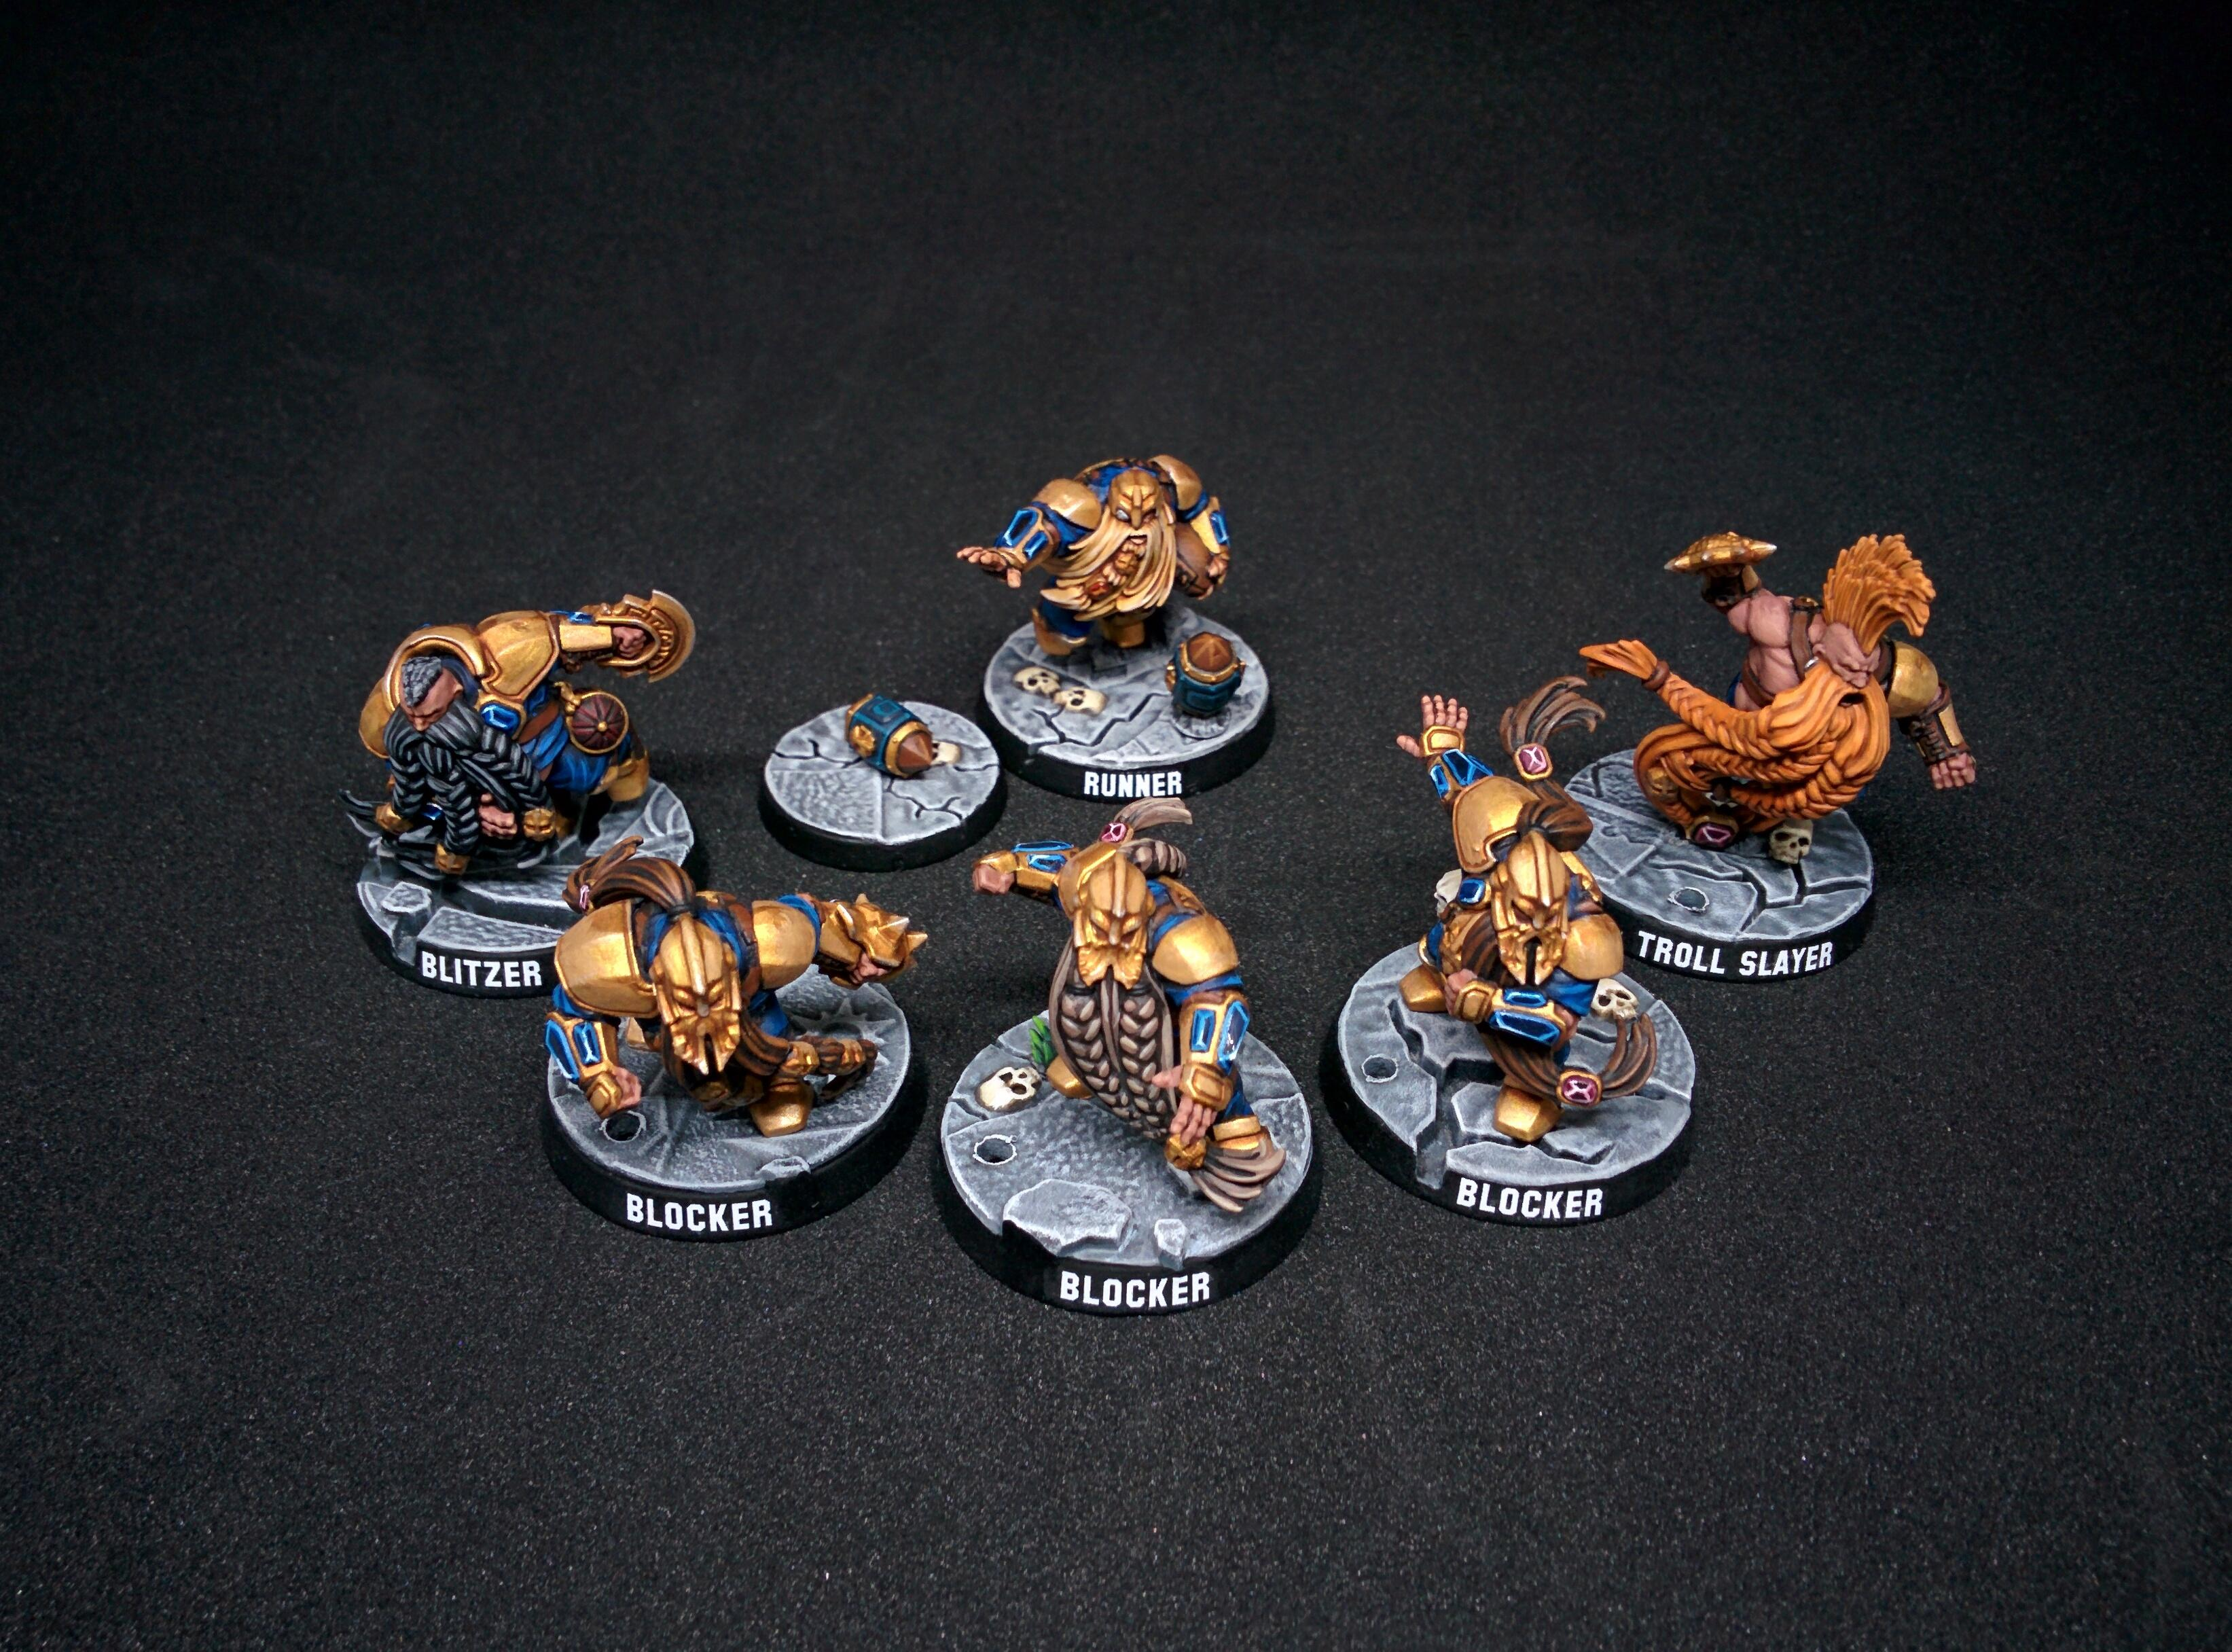 Blizter, Blocker, Blood Bowl, Citadel, Dwarf Giants, Dwarves, Fantasy Football, Games Workshop, Miniatures, Runner, Troll Slayer, Warhammer Fantasy